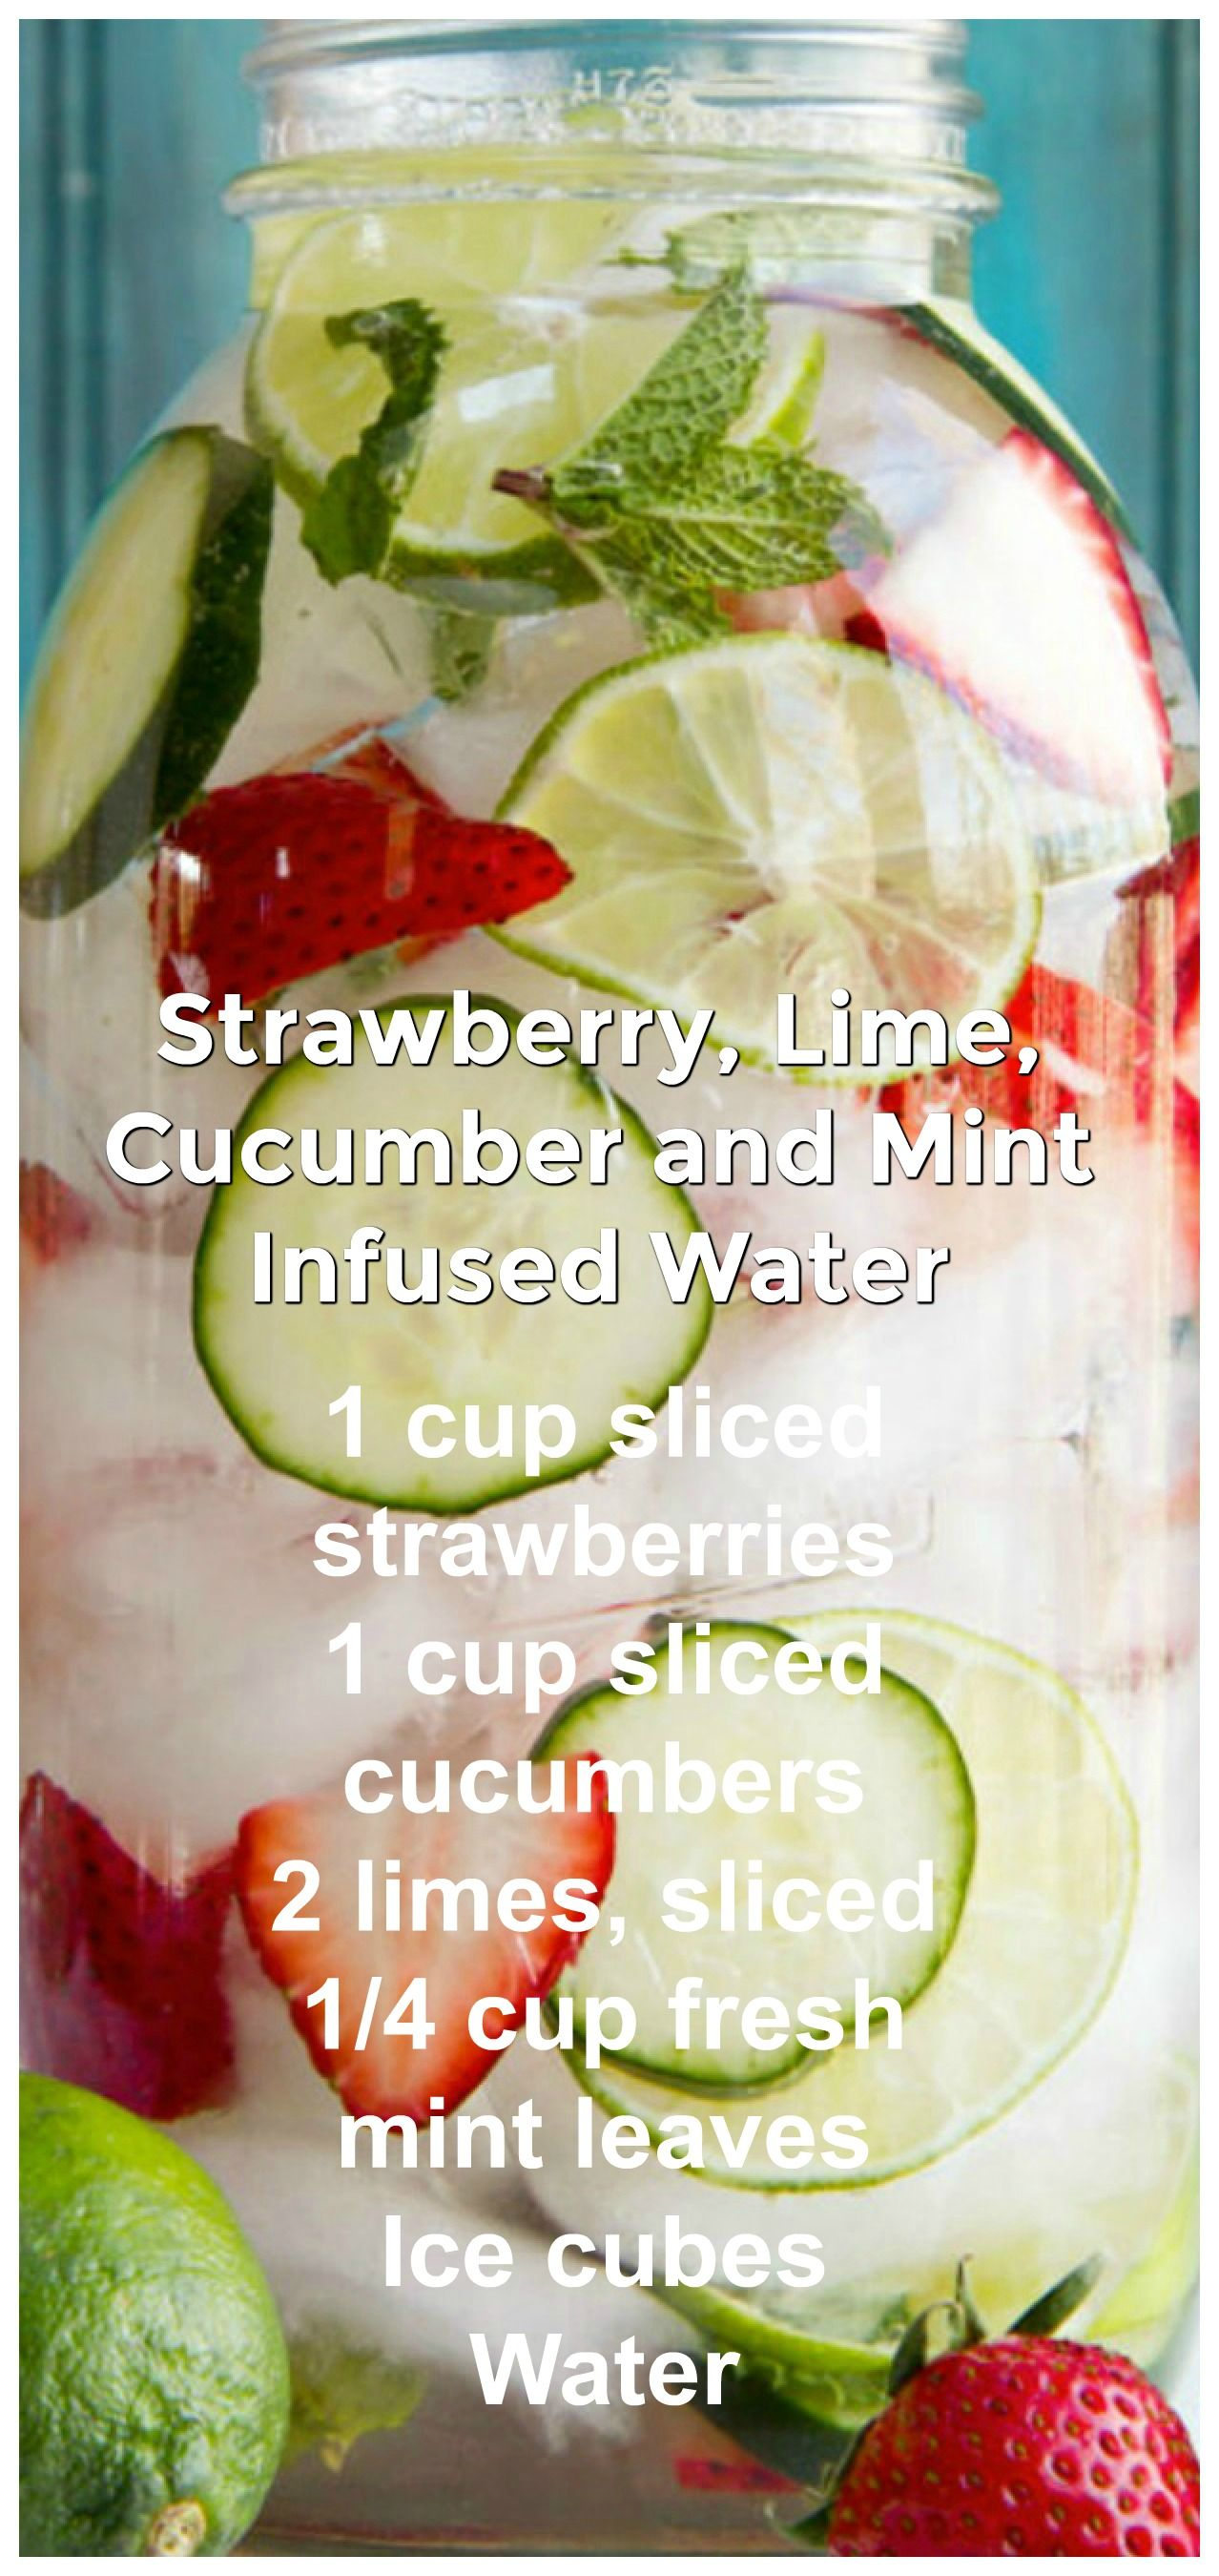 Strawberry Lime Cucumber and Mint Infused Water  Jazz up your daily hydration with this infused water Strawberries add a little sweetness while cucumber mint and lime mak...